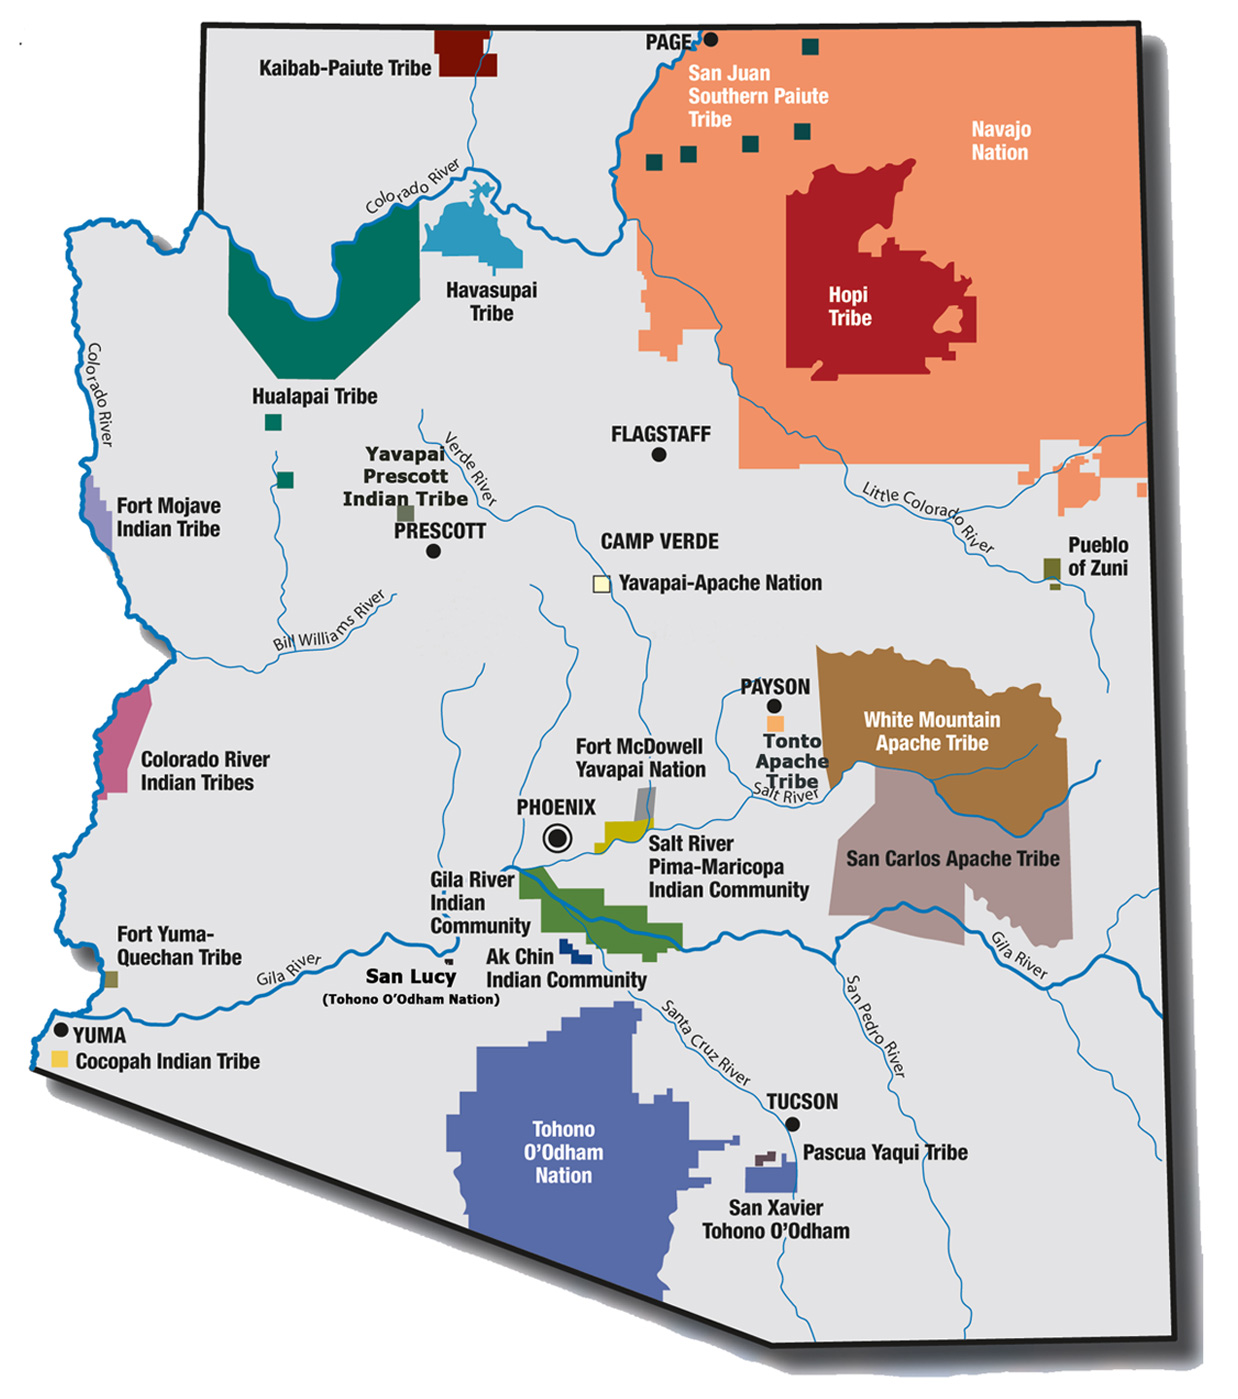 LAPR Arizona Almanac – Arizona Tourist Attractions Map